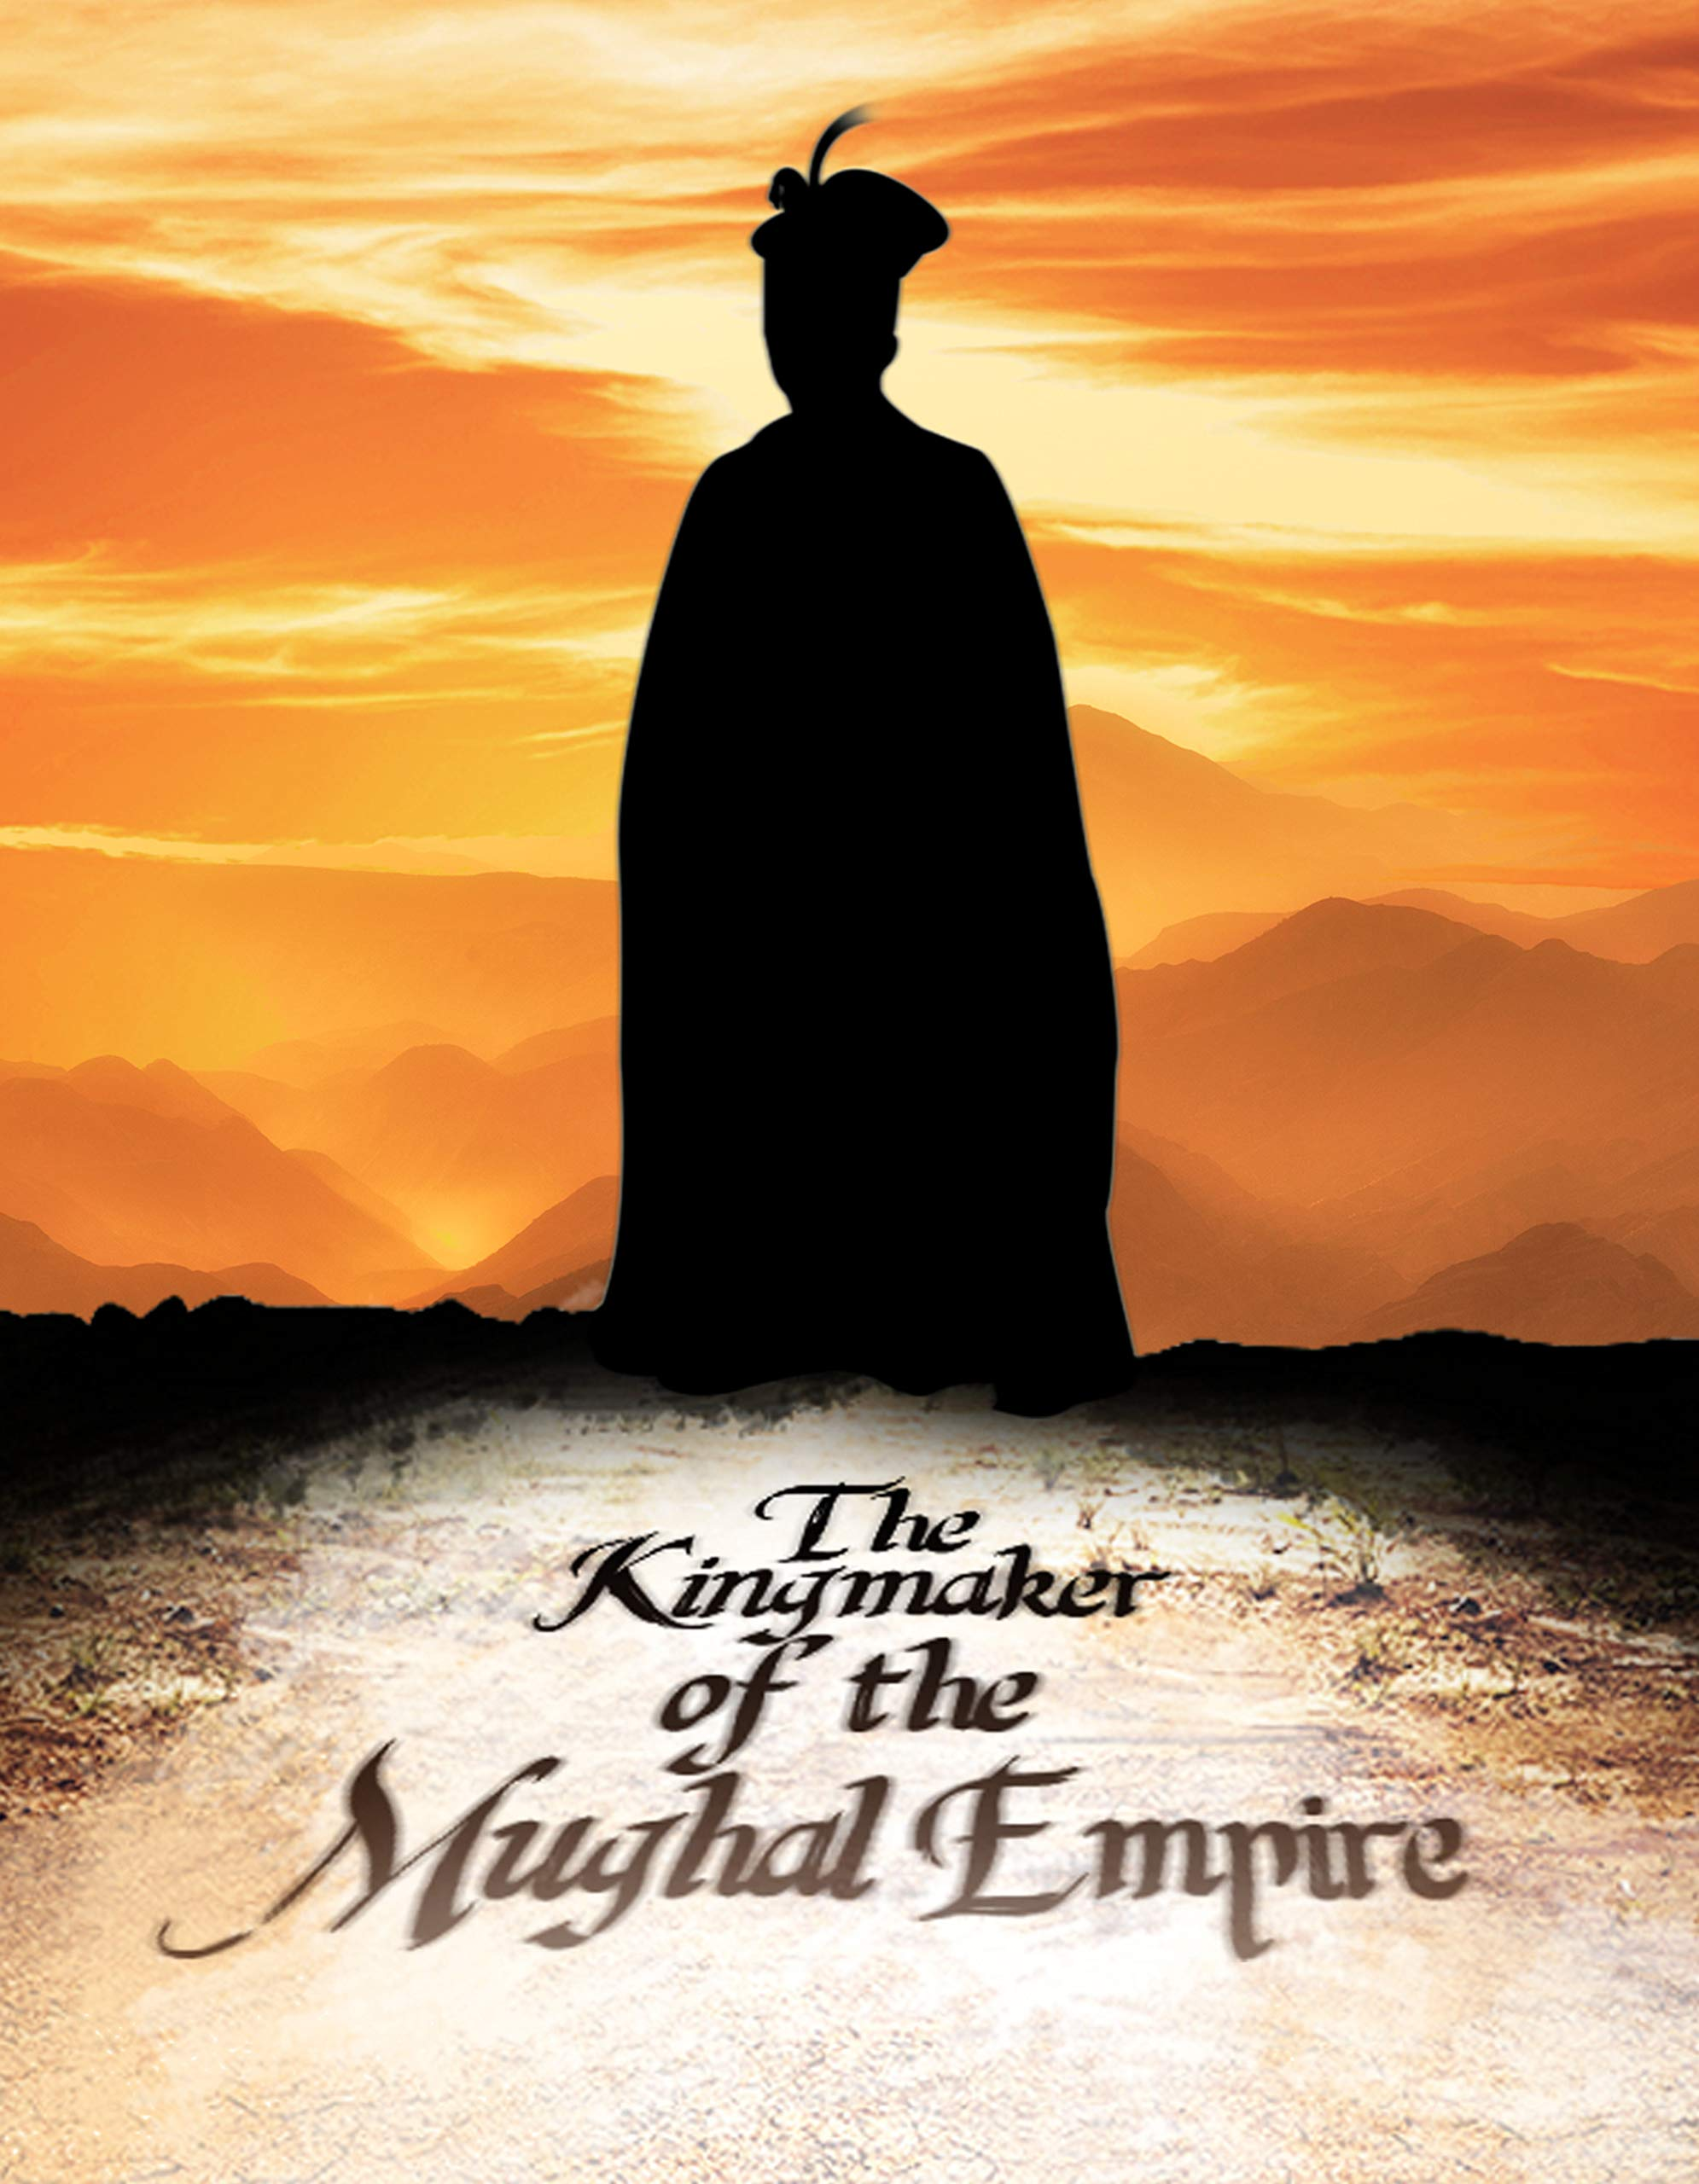 The Kingmaker of the Mughal Empire